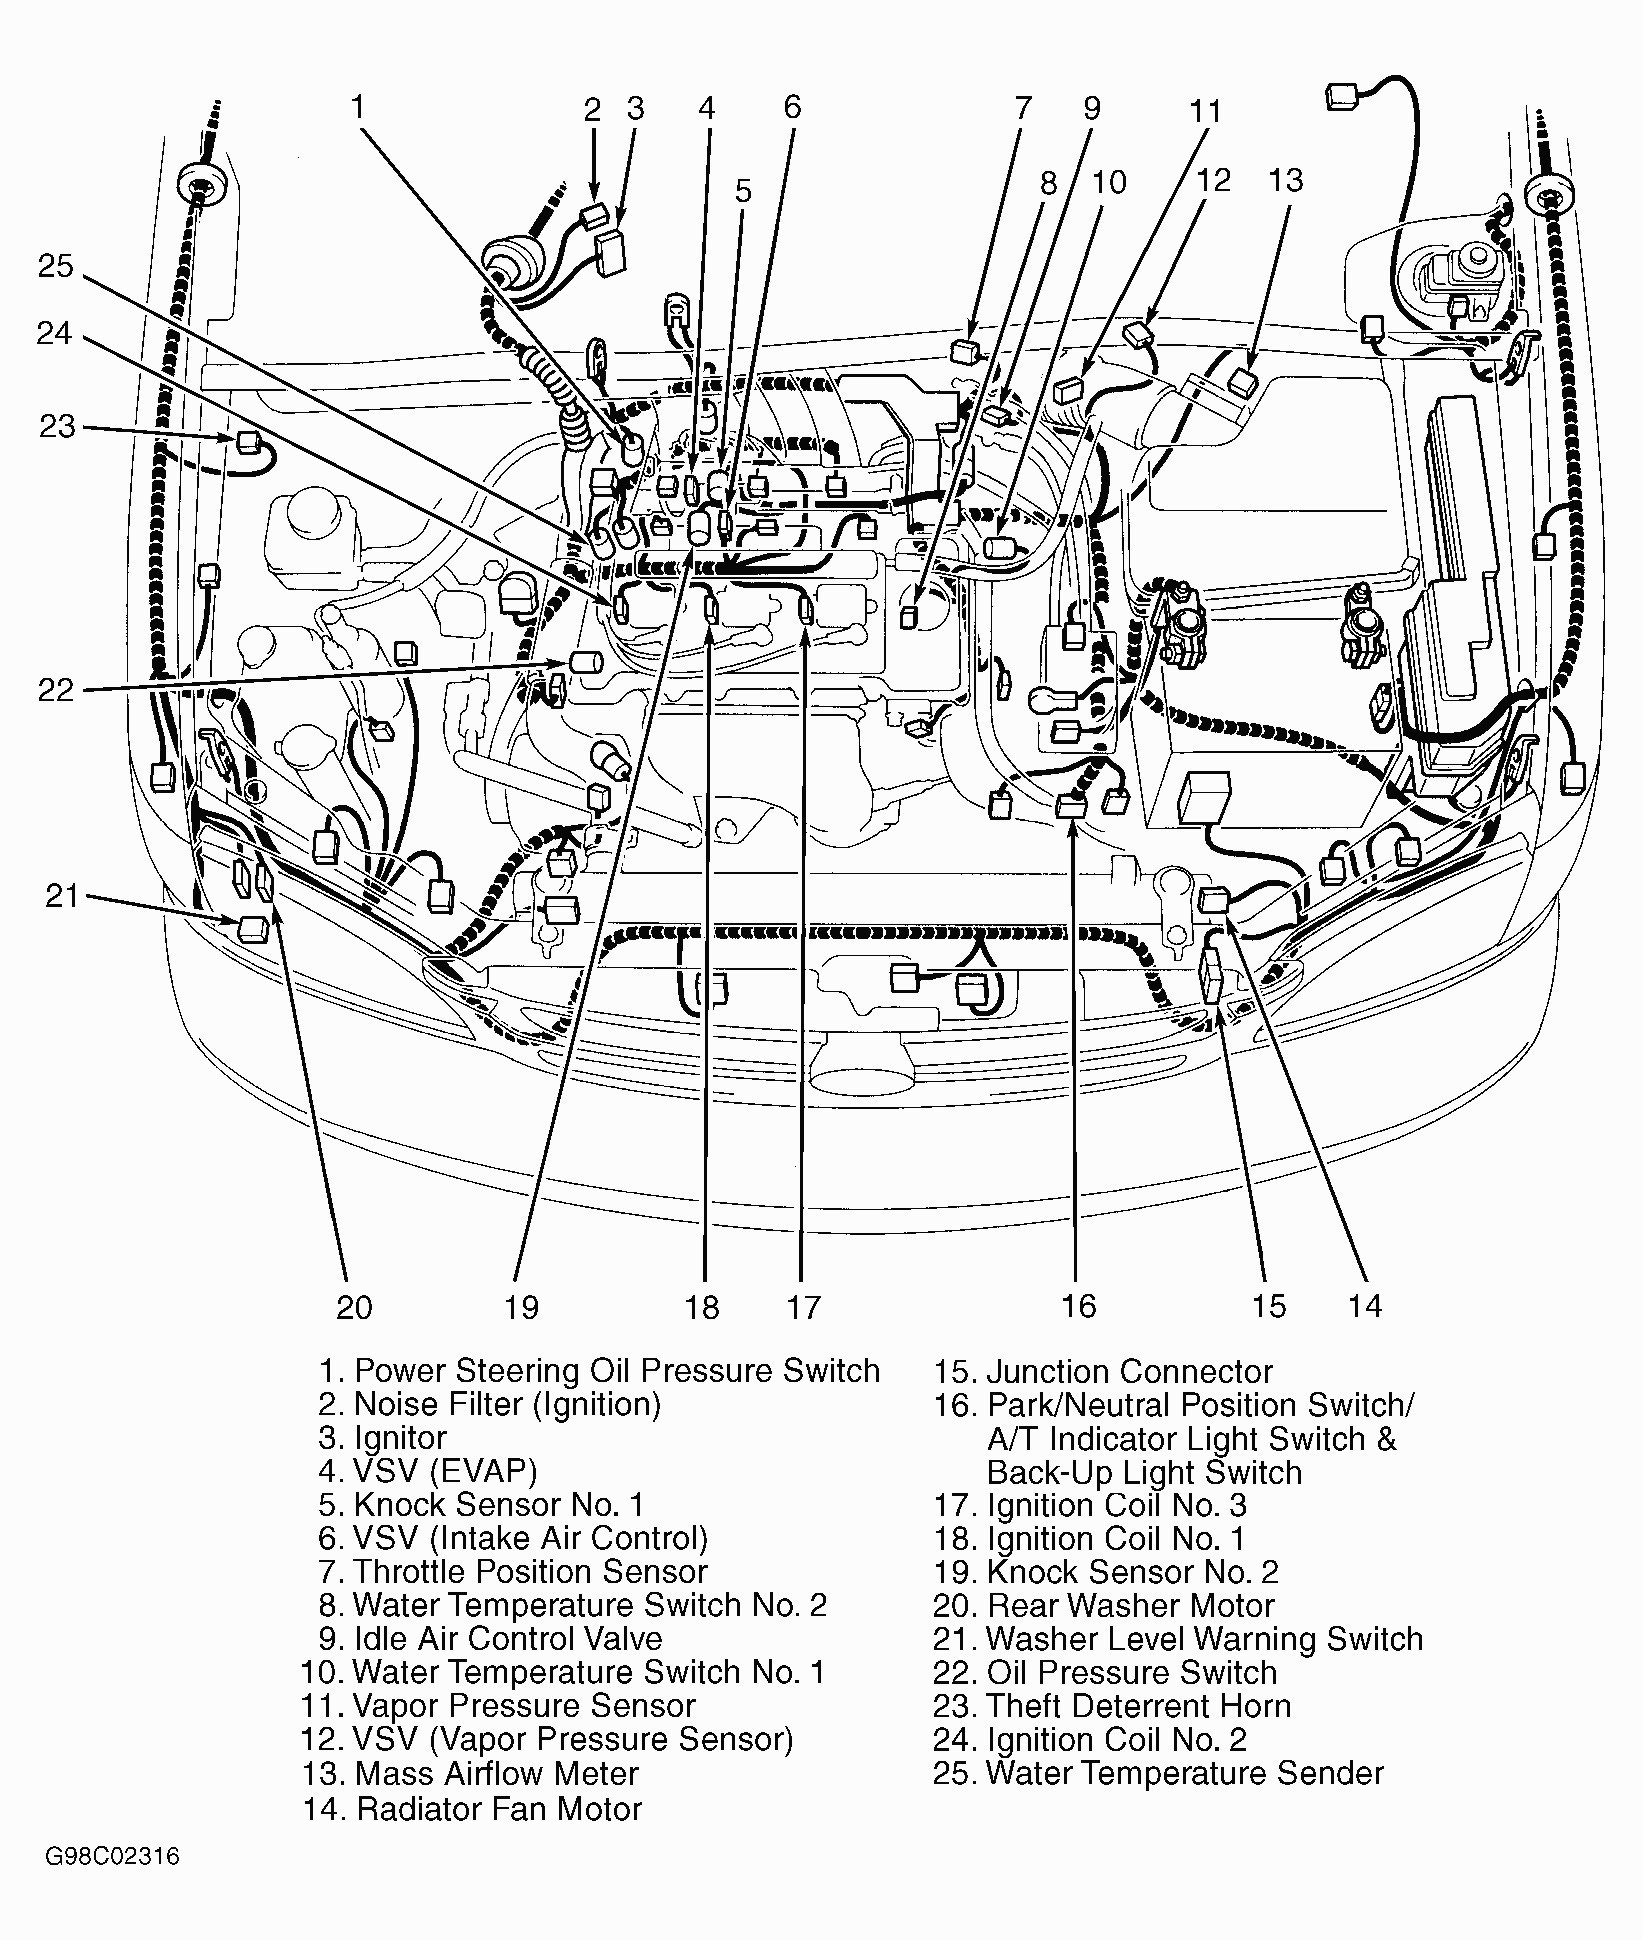 2004 toyota Tacoma Parts Diagram 2000 toyota Ta A Steering Parts Diagram Information Wiring Of 2004 toyota Tacoma Parts Diagram